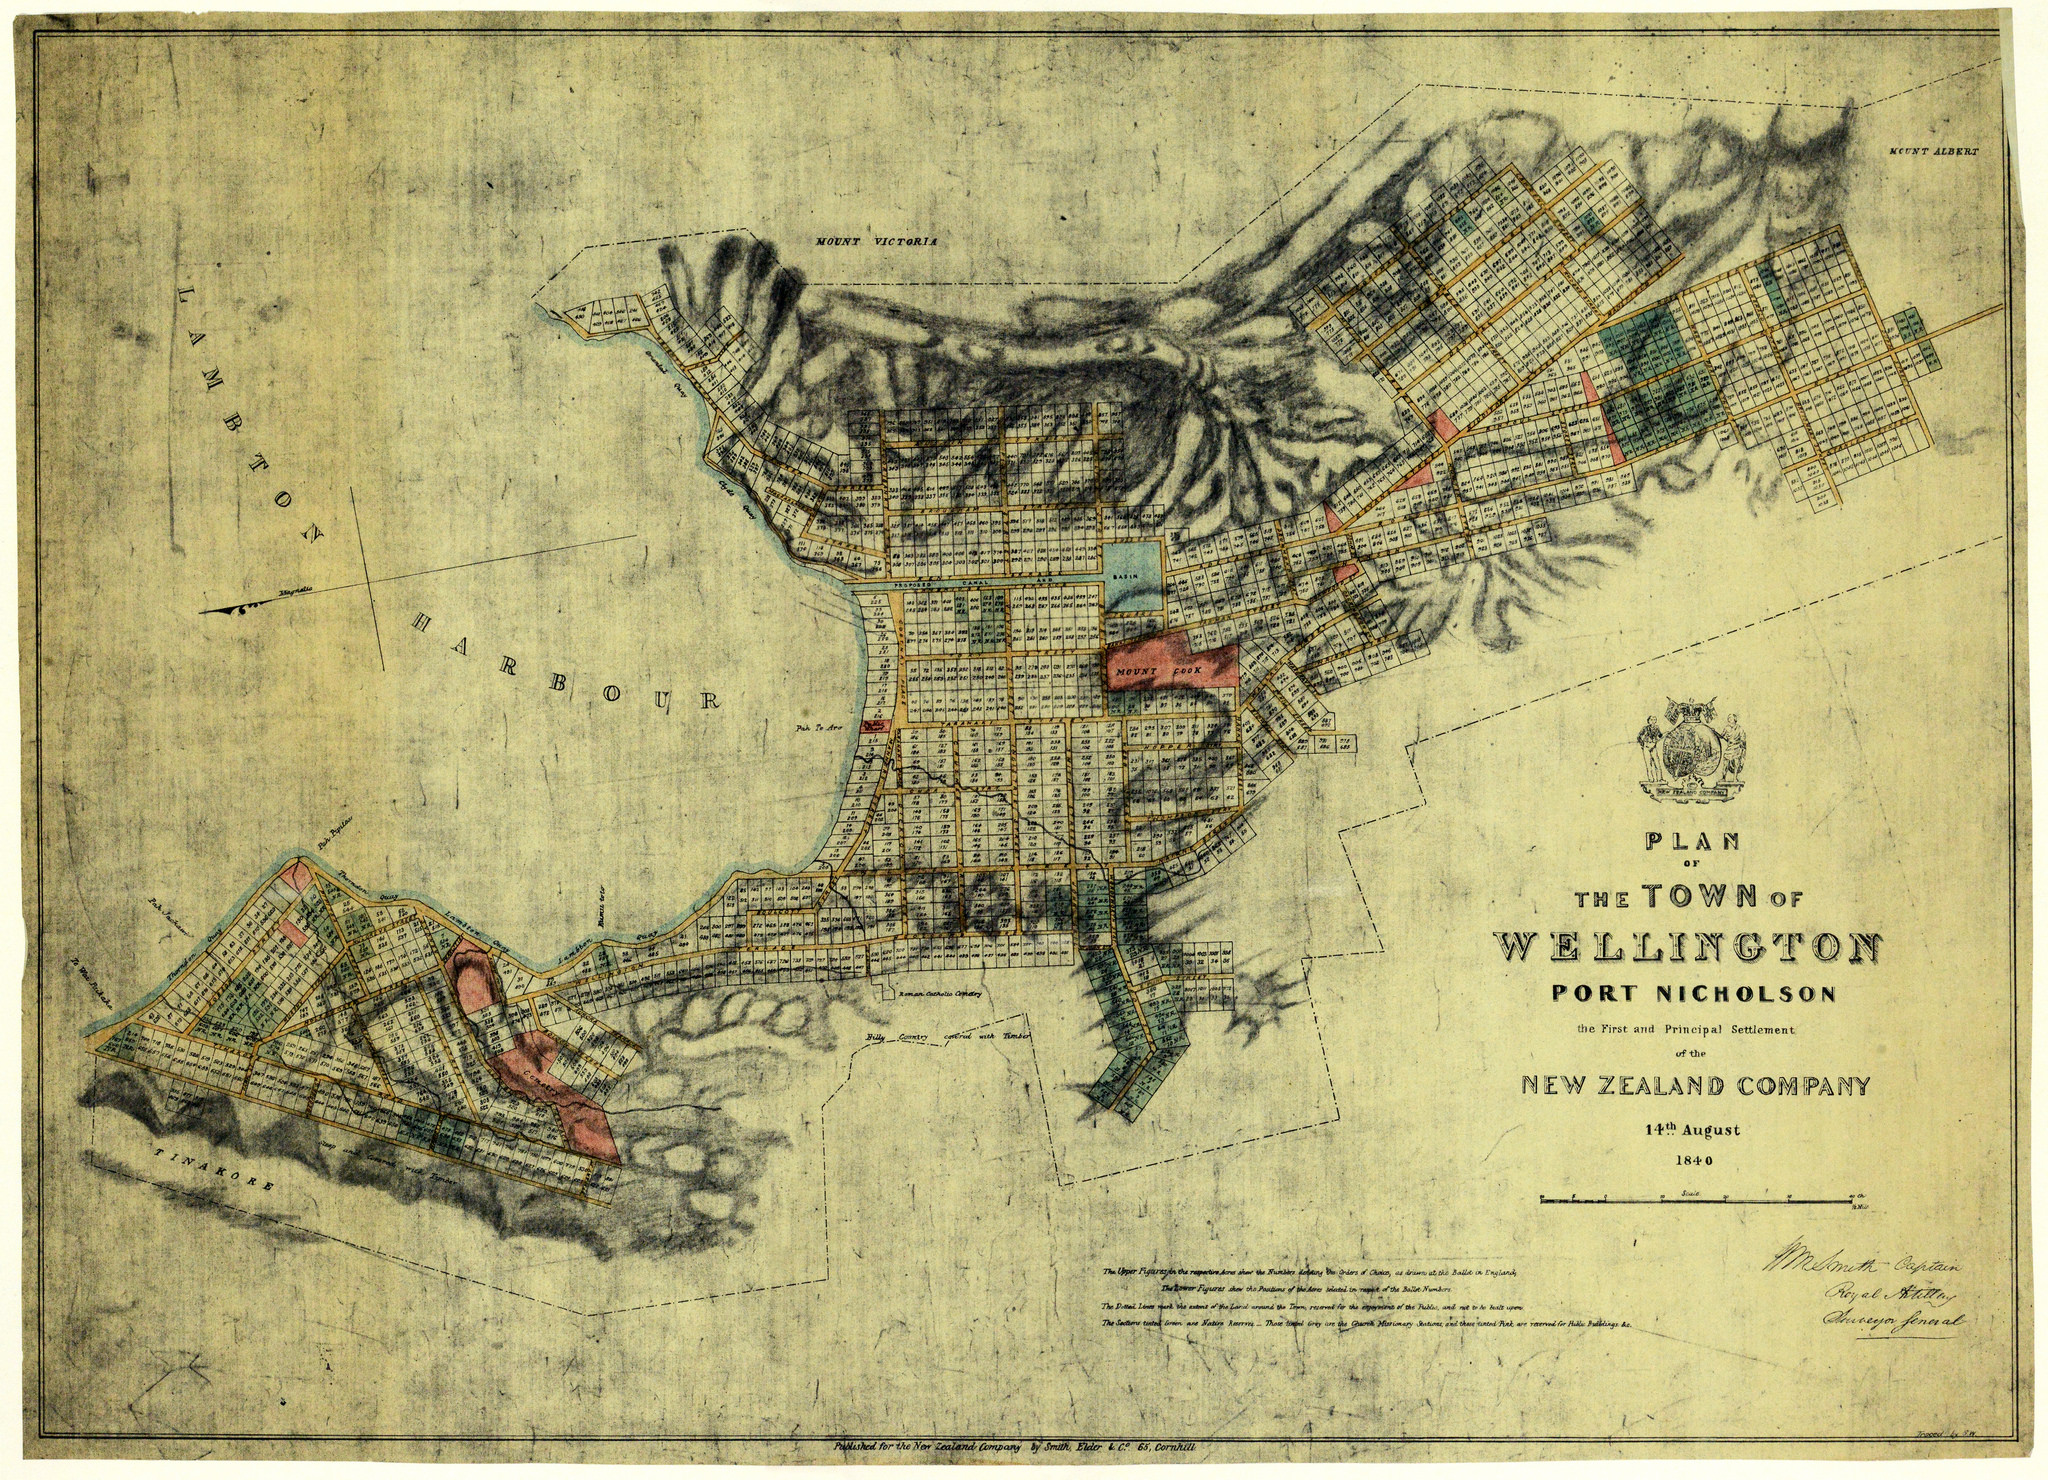 Map of alllotted residential bocks drawn up by the New Zealand company, outlining the new town in 1840.  Archives New Zealand /Flickr (CC BY 2.0)